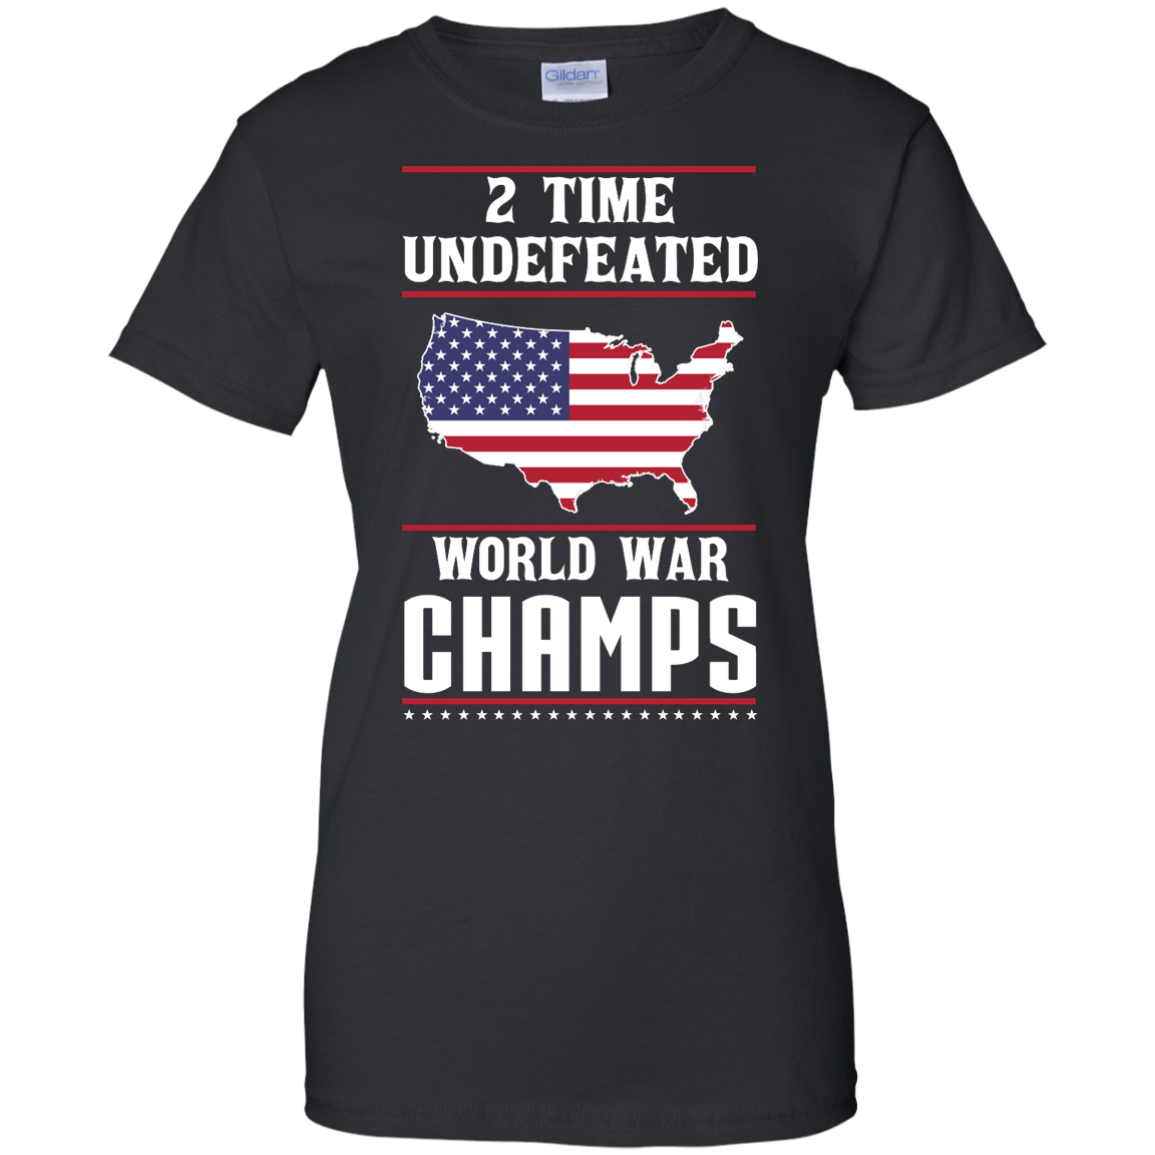 image 1182px Two time undefeated world war champs t shirt, hoodies, long sleeves